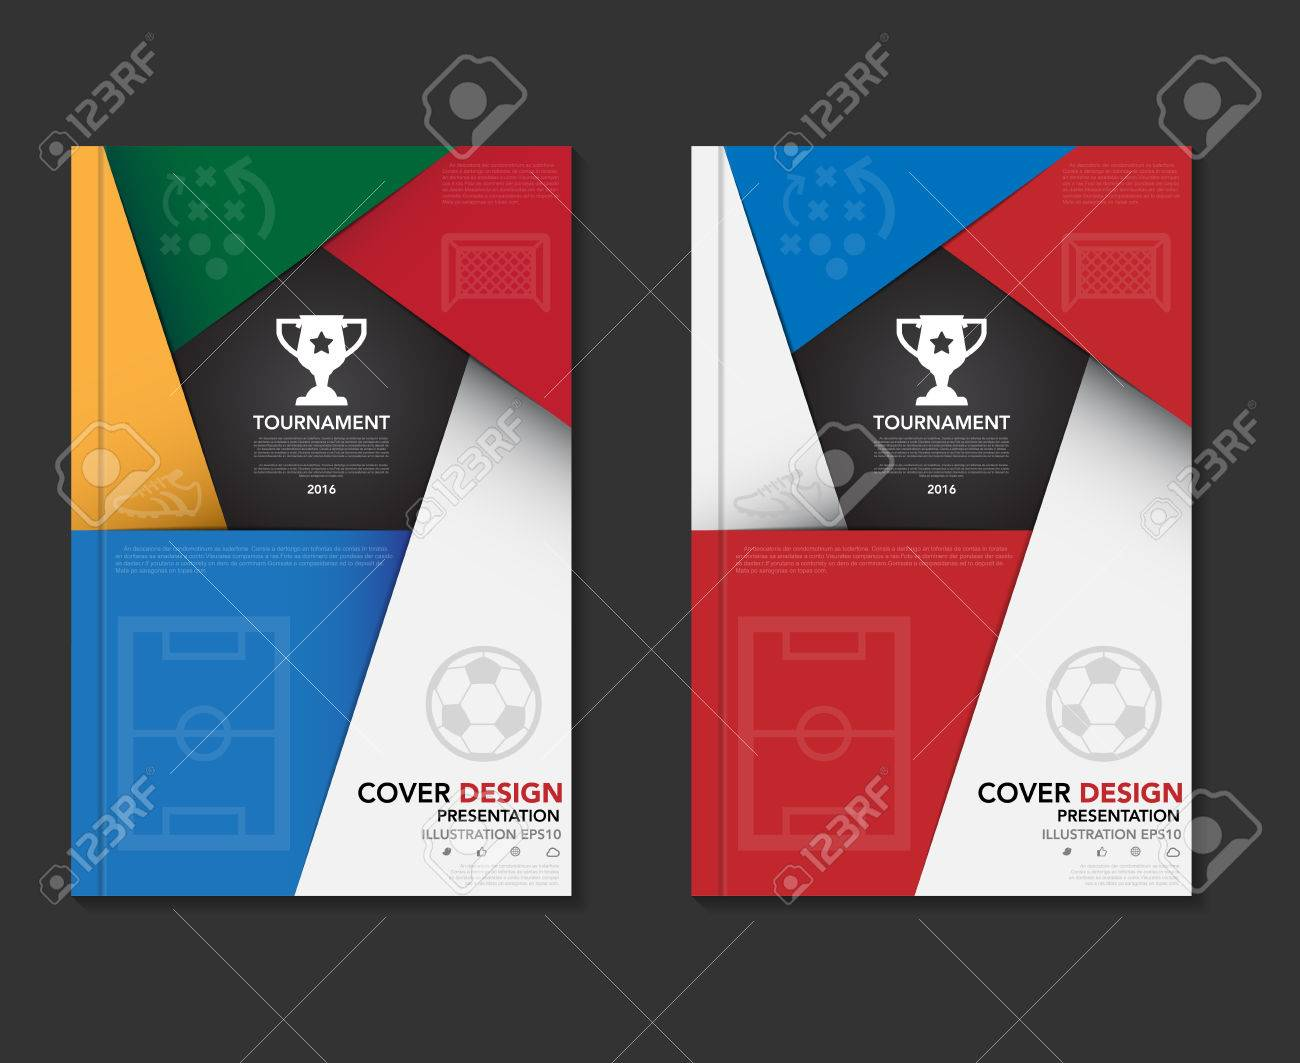 soccer certificate templates.html